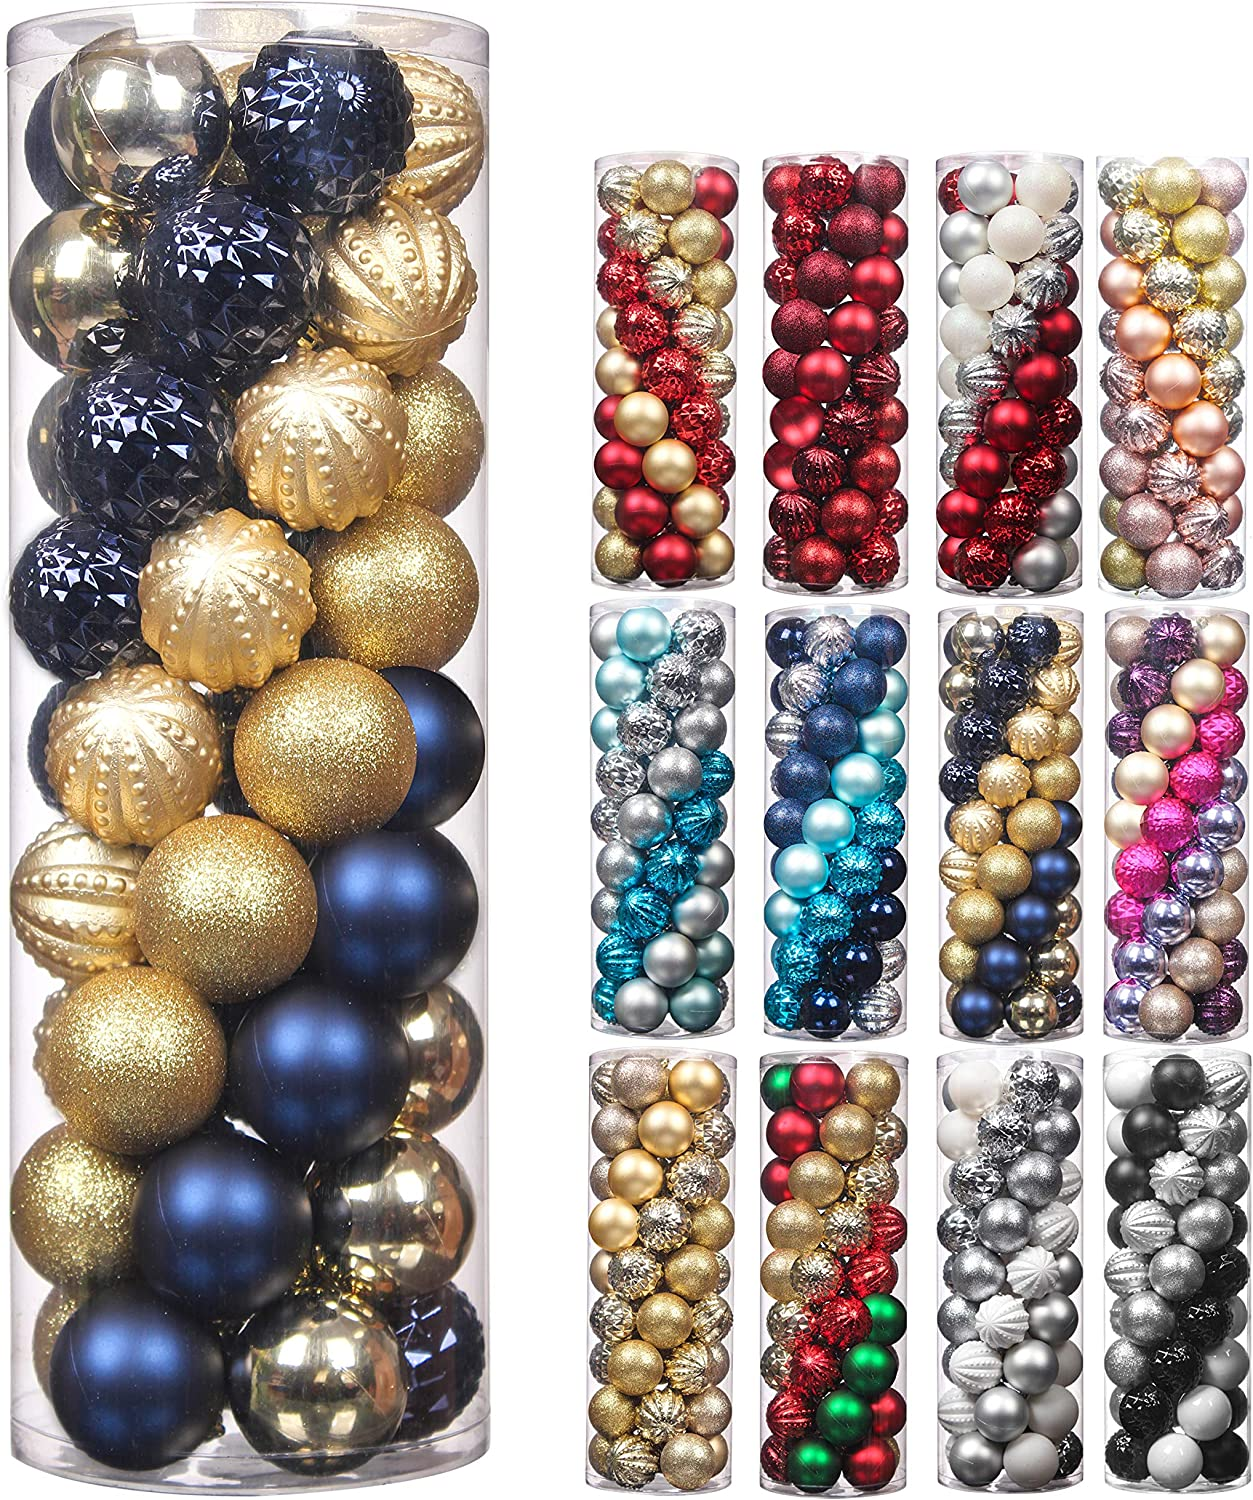 Christmas Balls,45Pcs 2.36inch Glitter Christmas Tree Ornaments Hanging Christmas Home Decorations for Home House Bar Party(Navy/Gold)